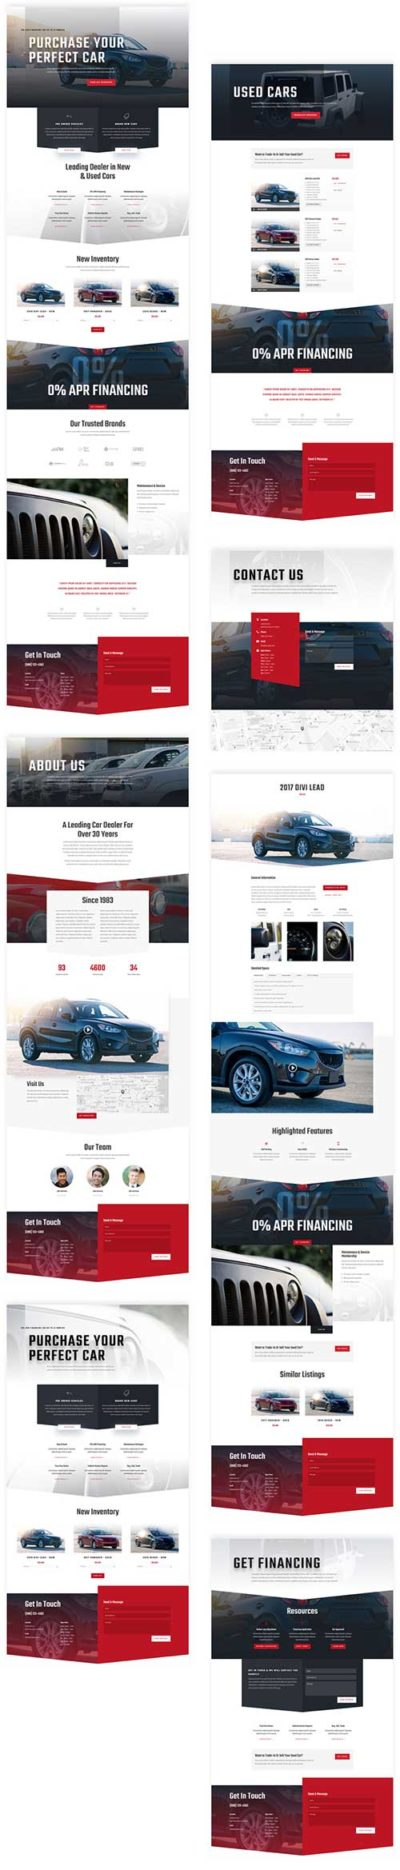 free car dealership Divi layout pack